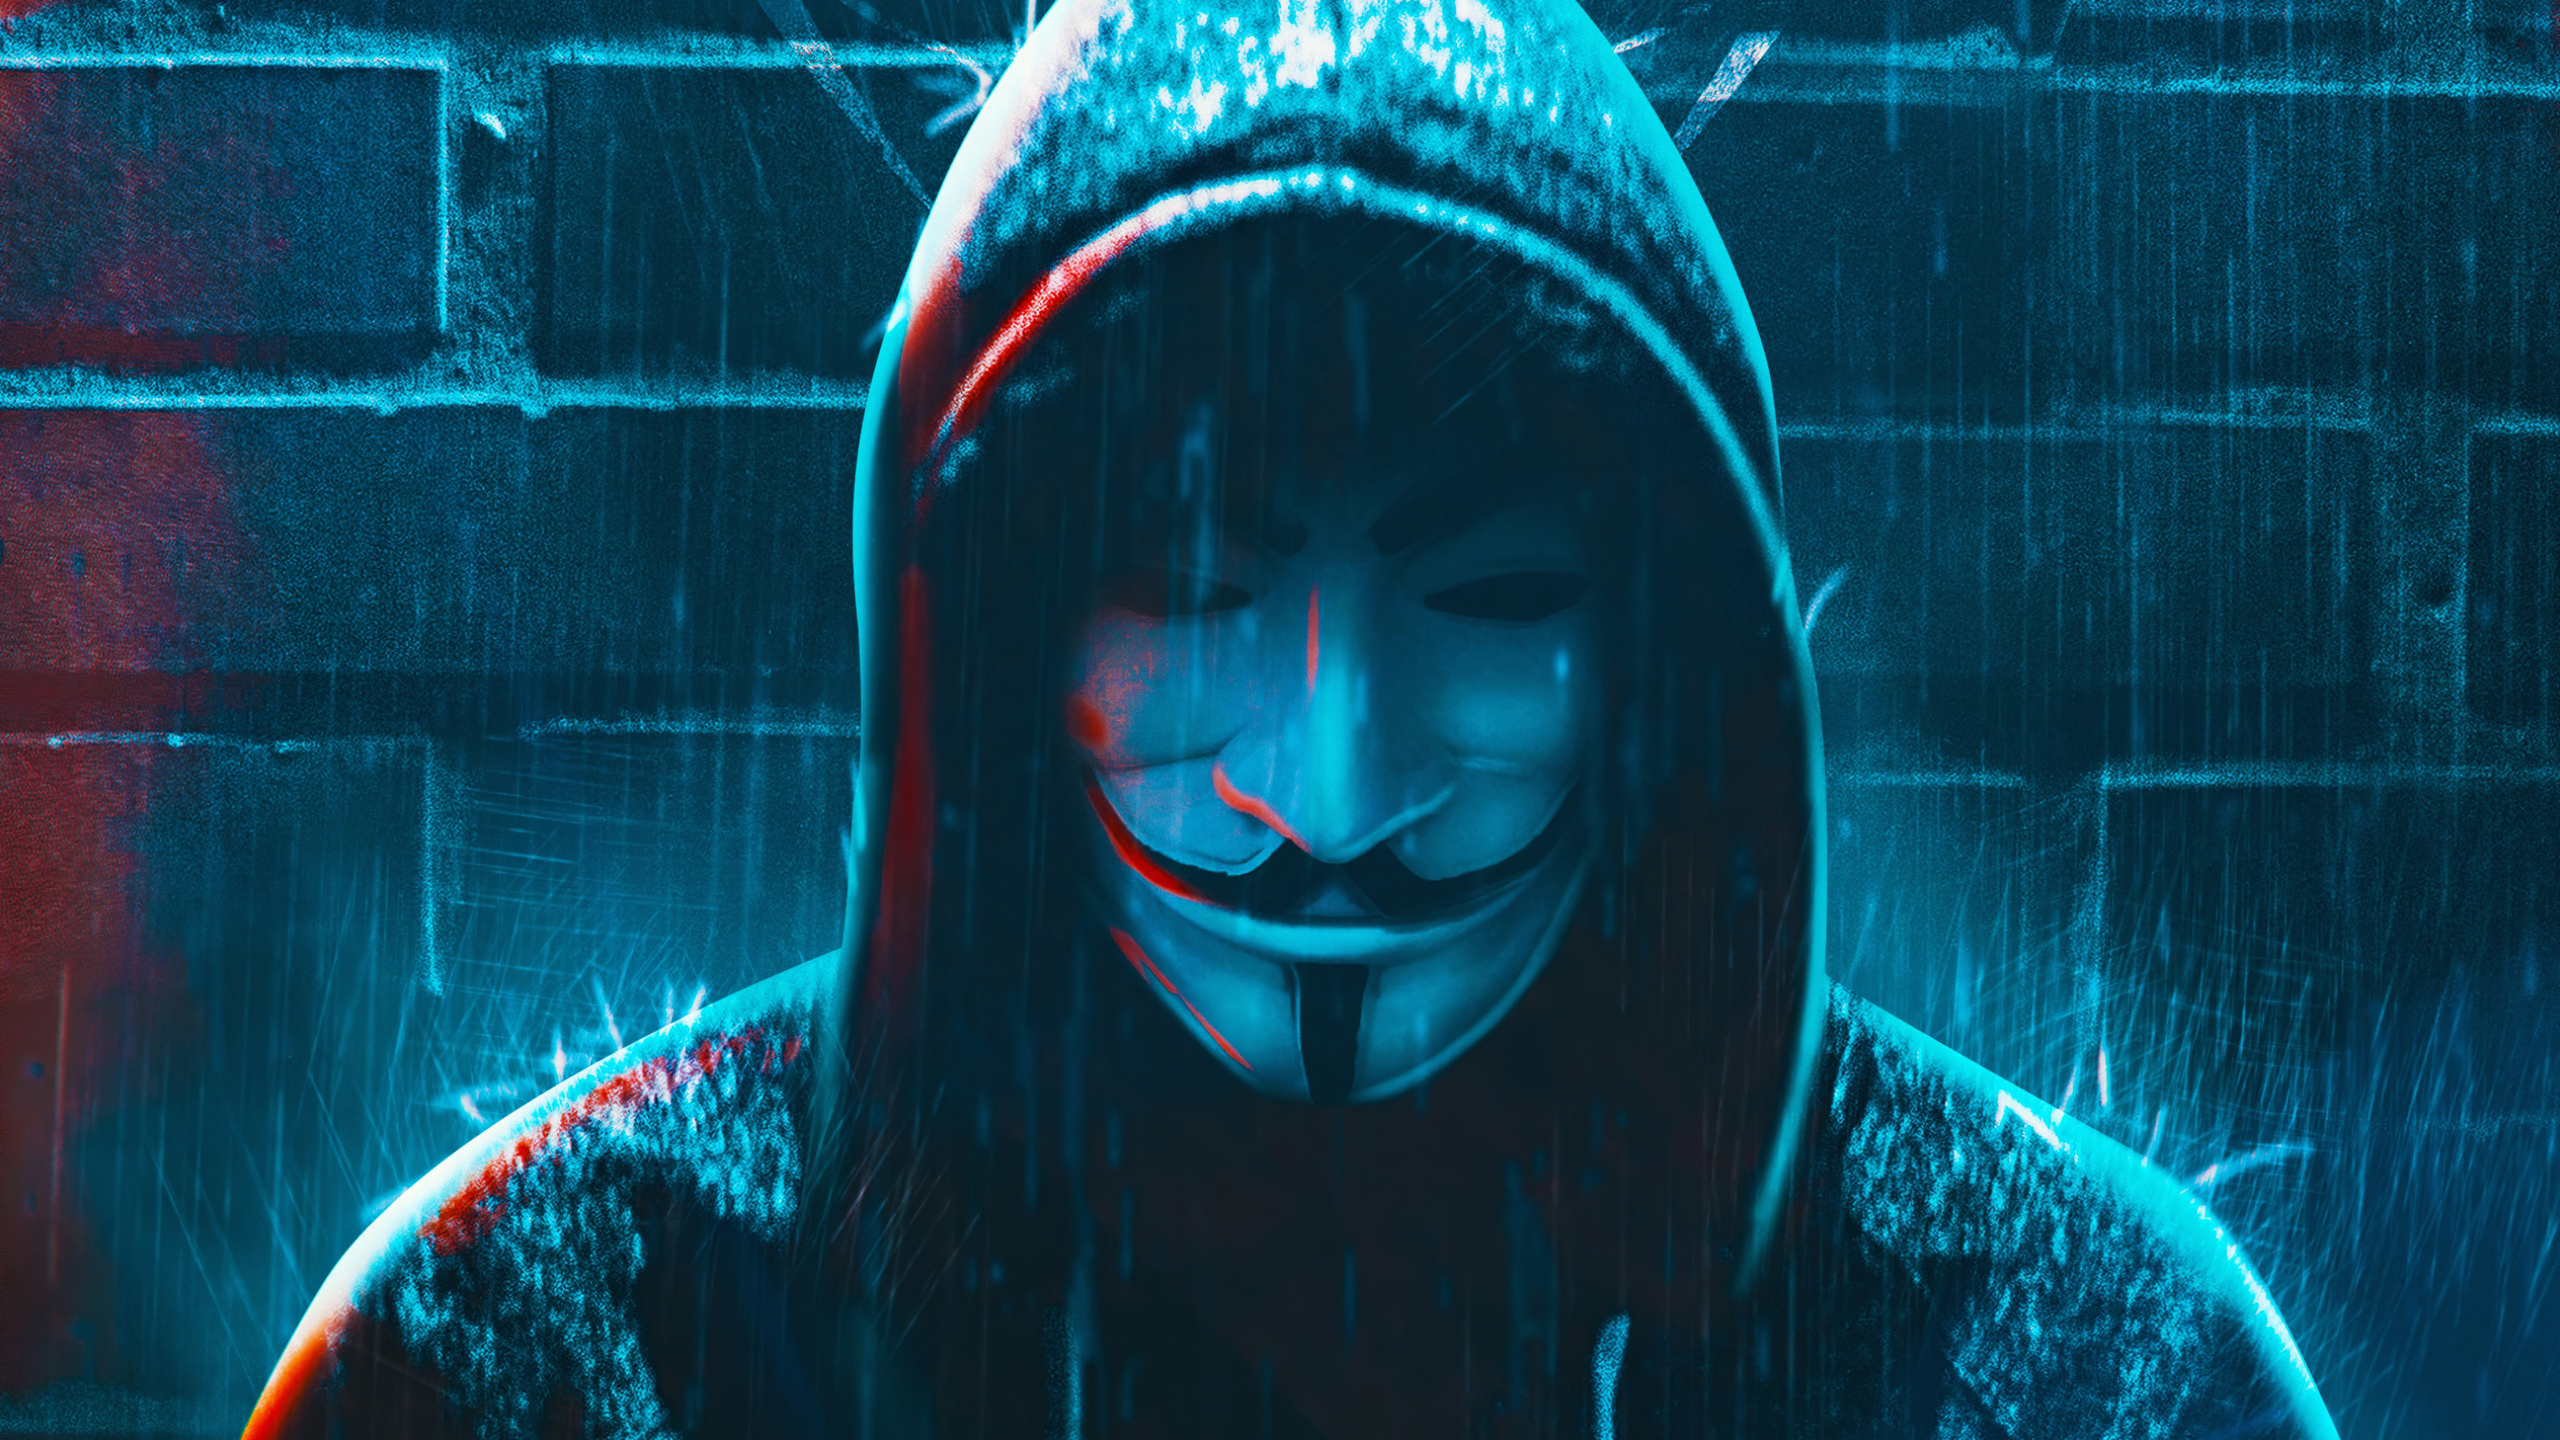 Looking For a Hacker Wallpaper? Here Are Some Examples